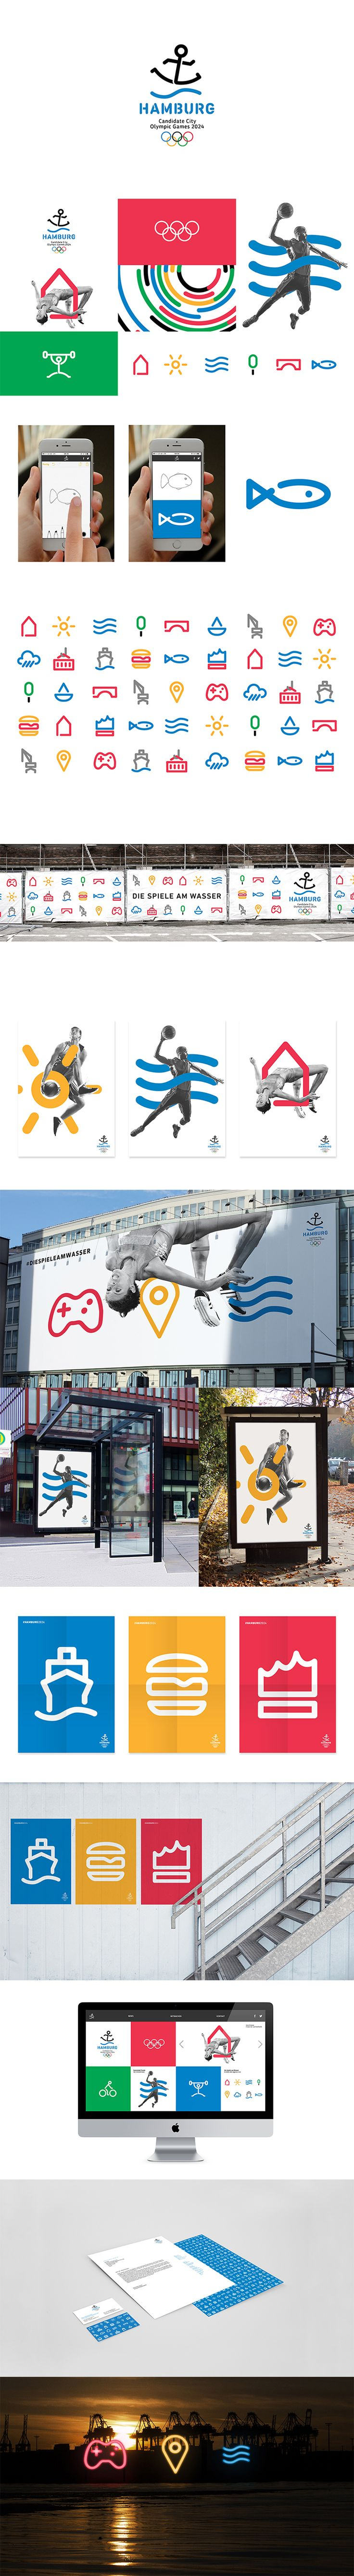 HAMBURG2024 CORPORATE DESIGN CONCEPT FOR THE 2024 OLYMPIC GAMES CANDIDACY OF HAMBURG  Copyright 2016 Barbara Madl & Hojin Kang Atelier Cameokid https://brandprototyping.de/2016/05/09/logo_hamburg2024_anchorman/